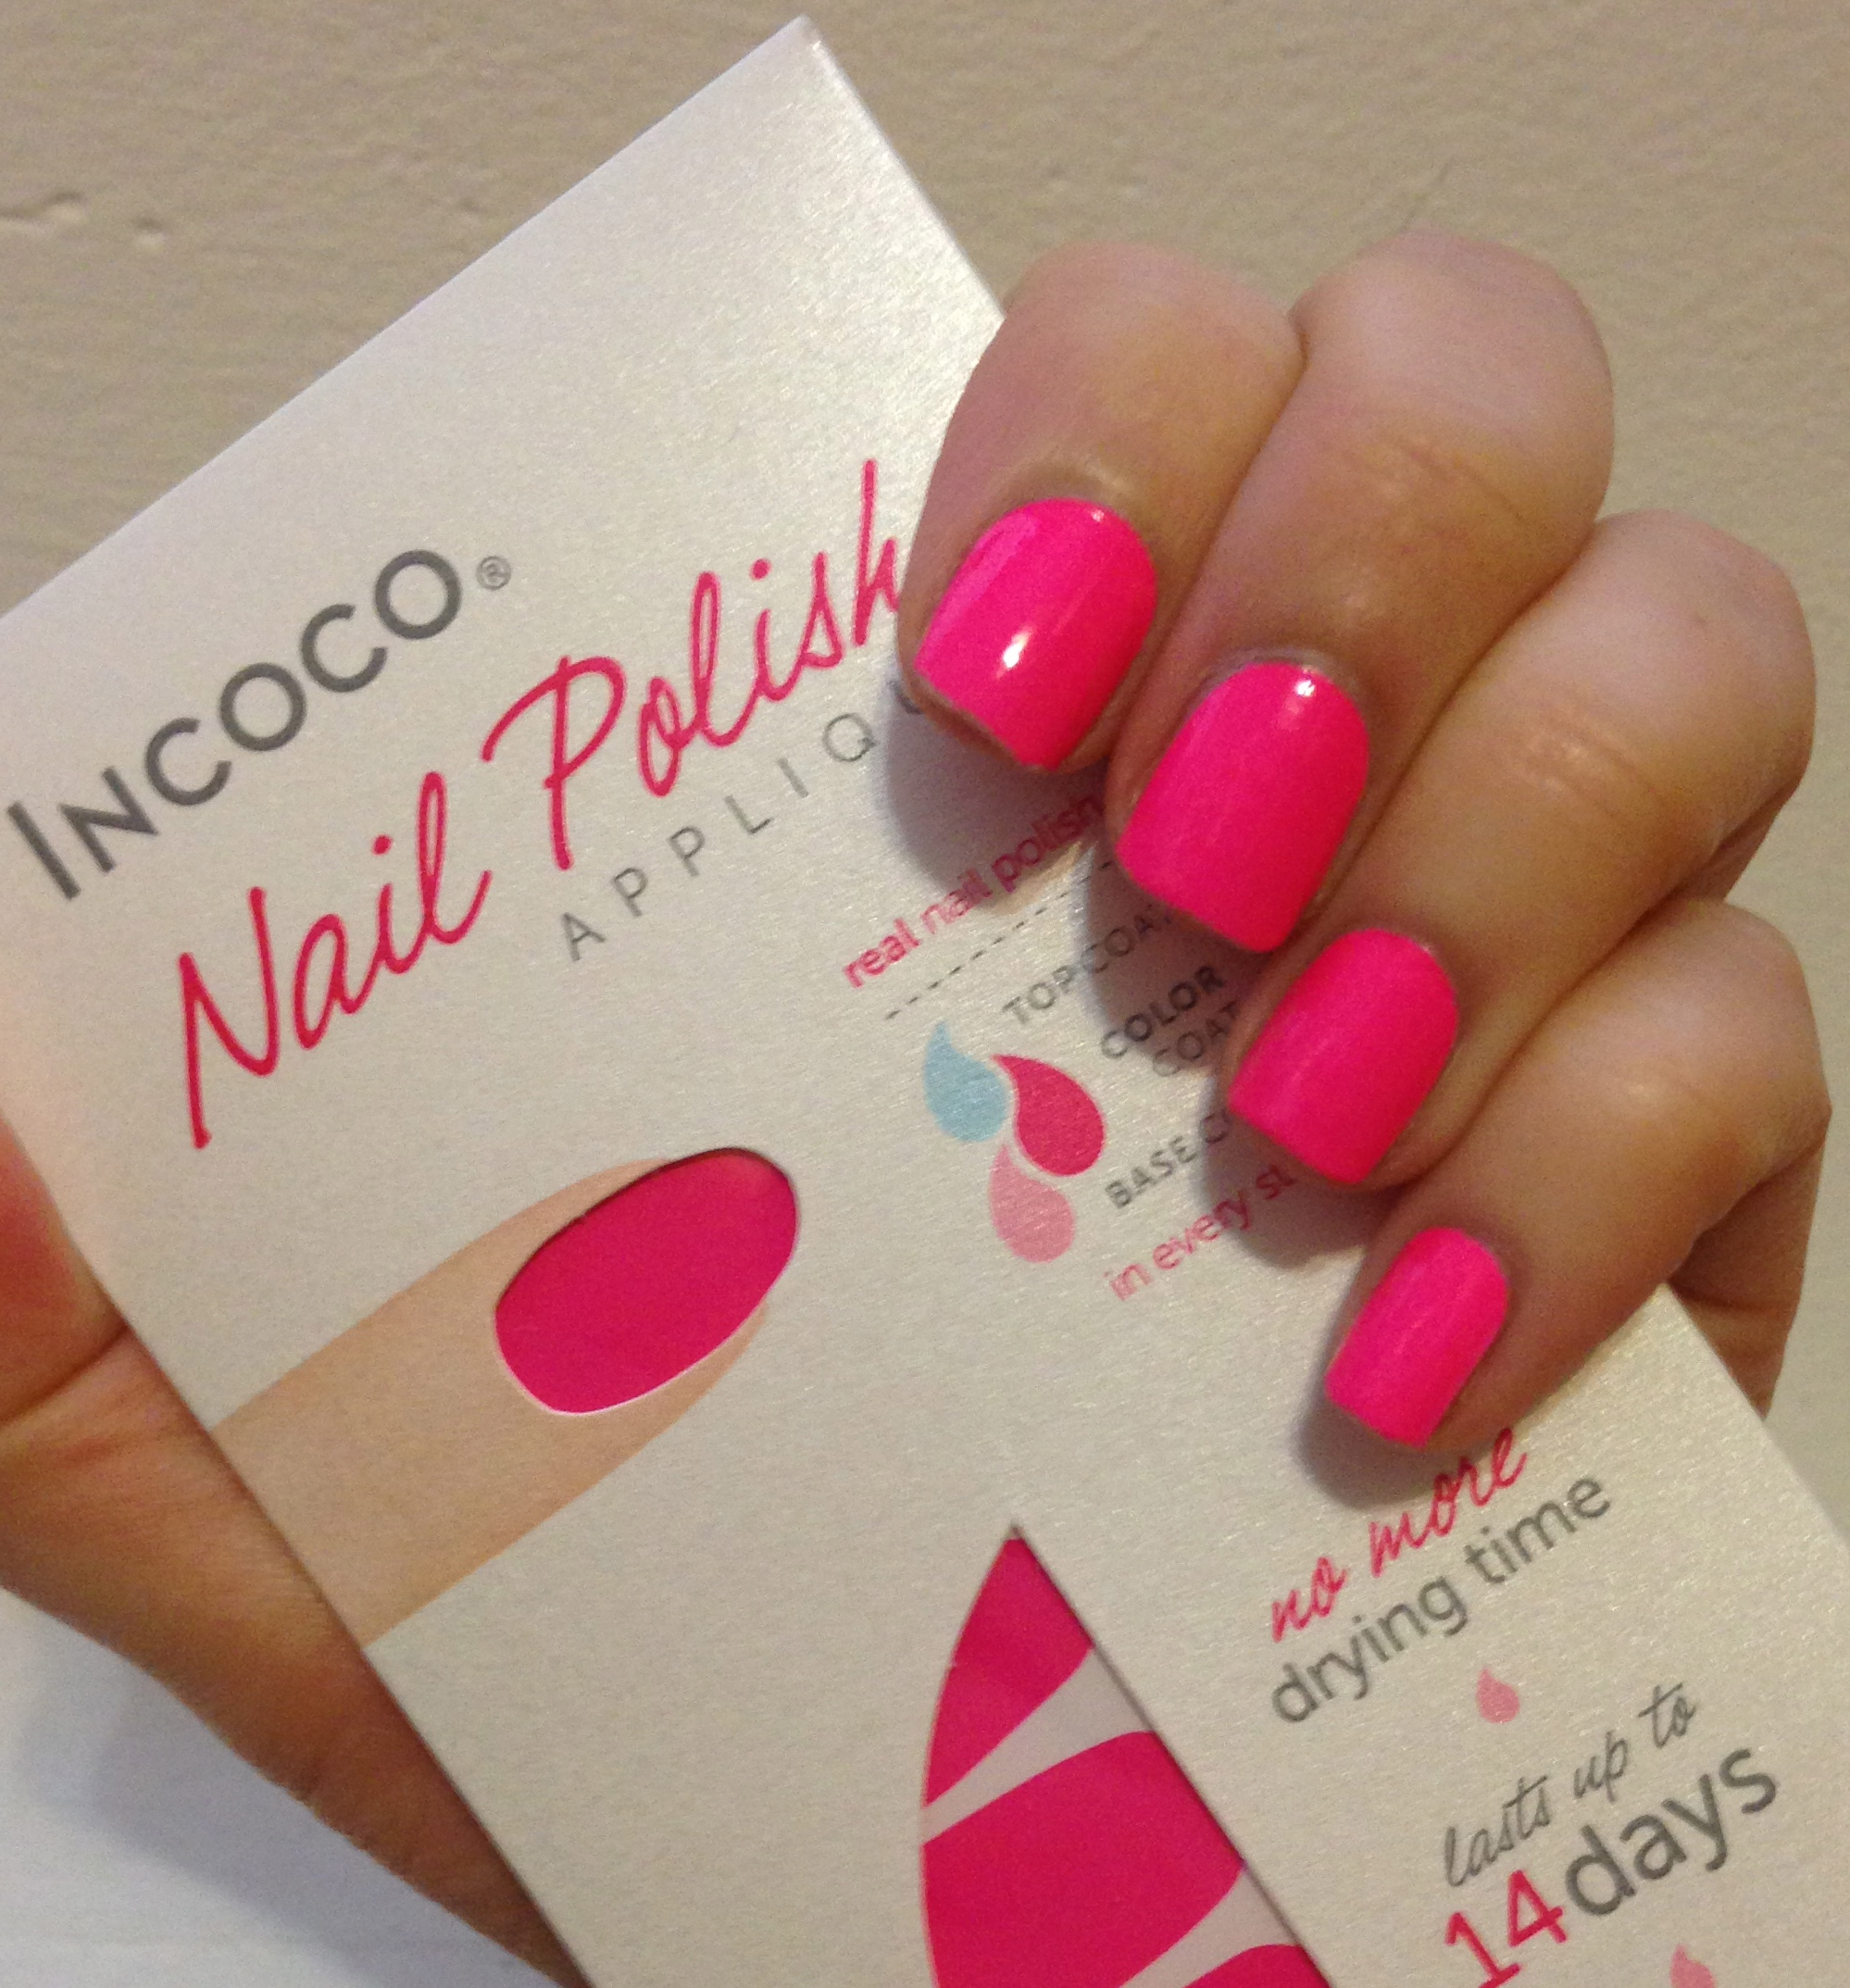 Incoco 100% Real Nail Polish Strips | An Inconclusive Review ...